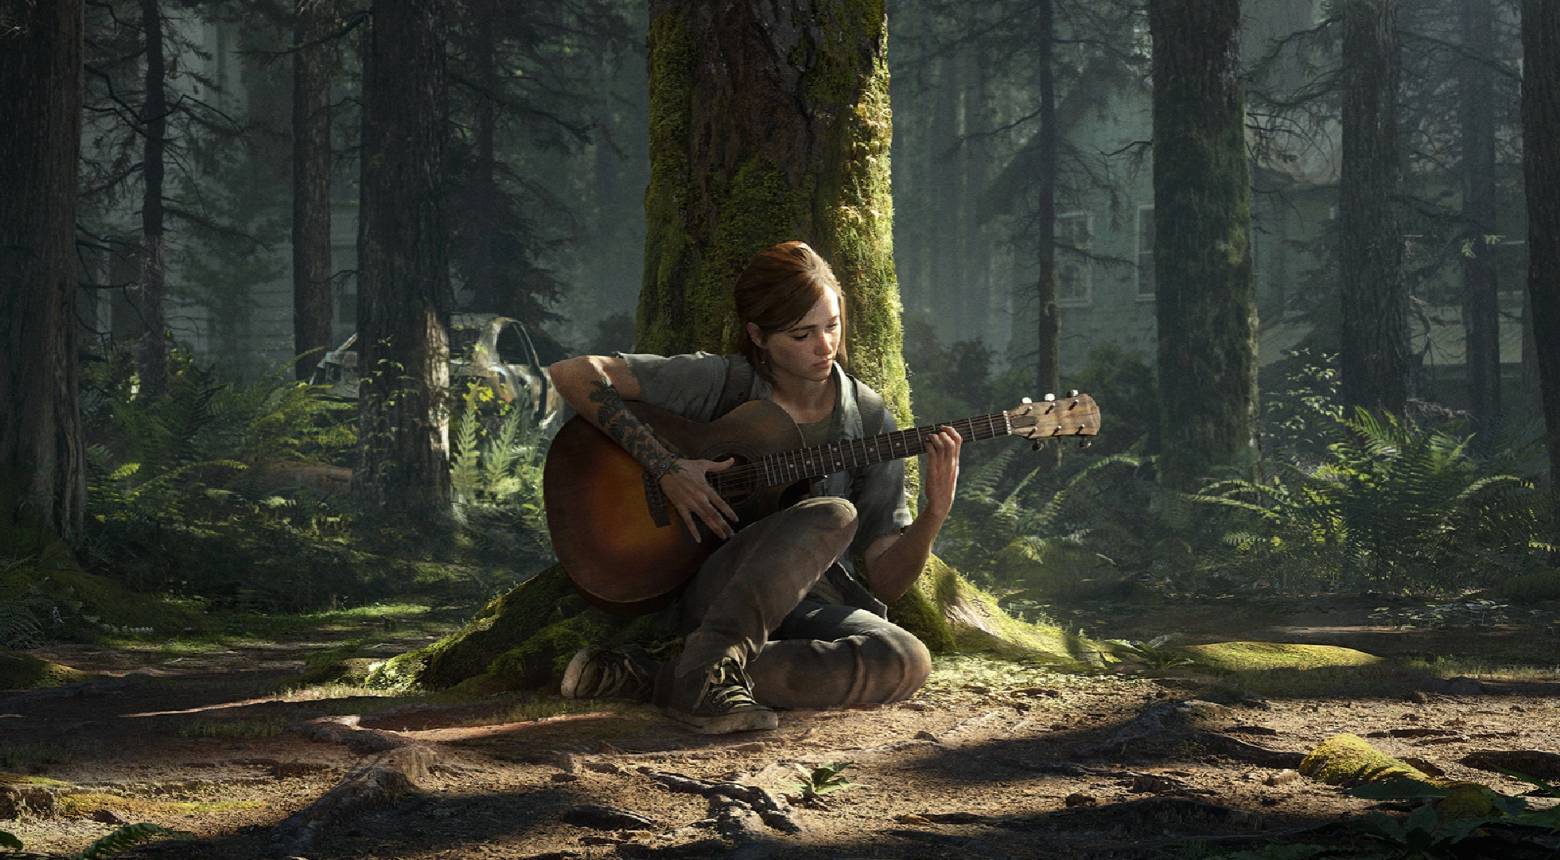 ellie playing guitar the last of us part 2